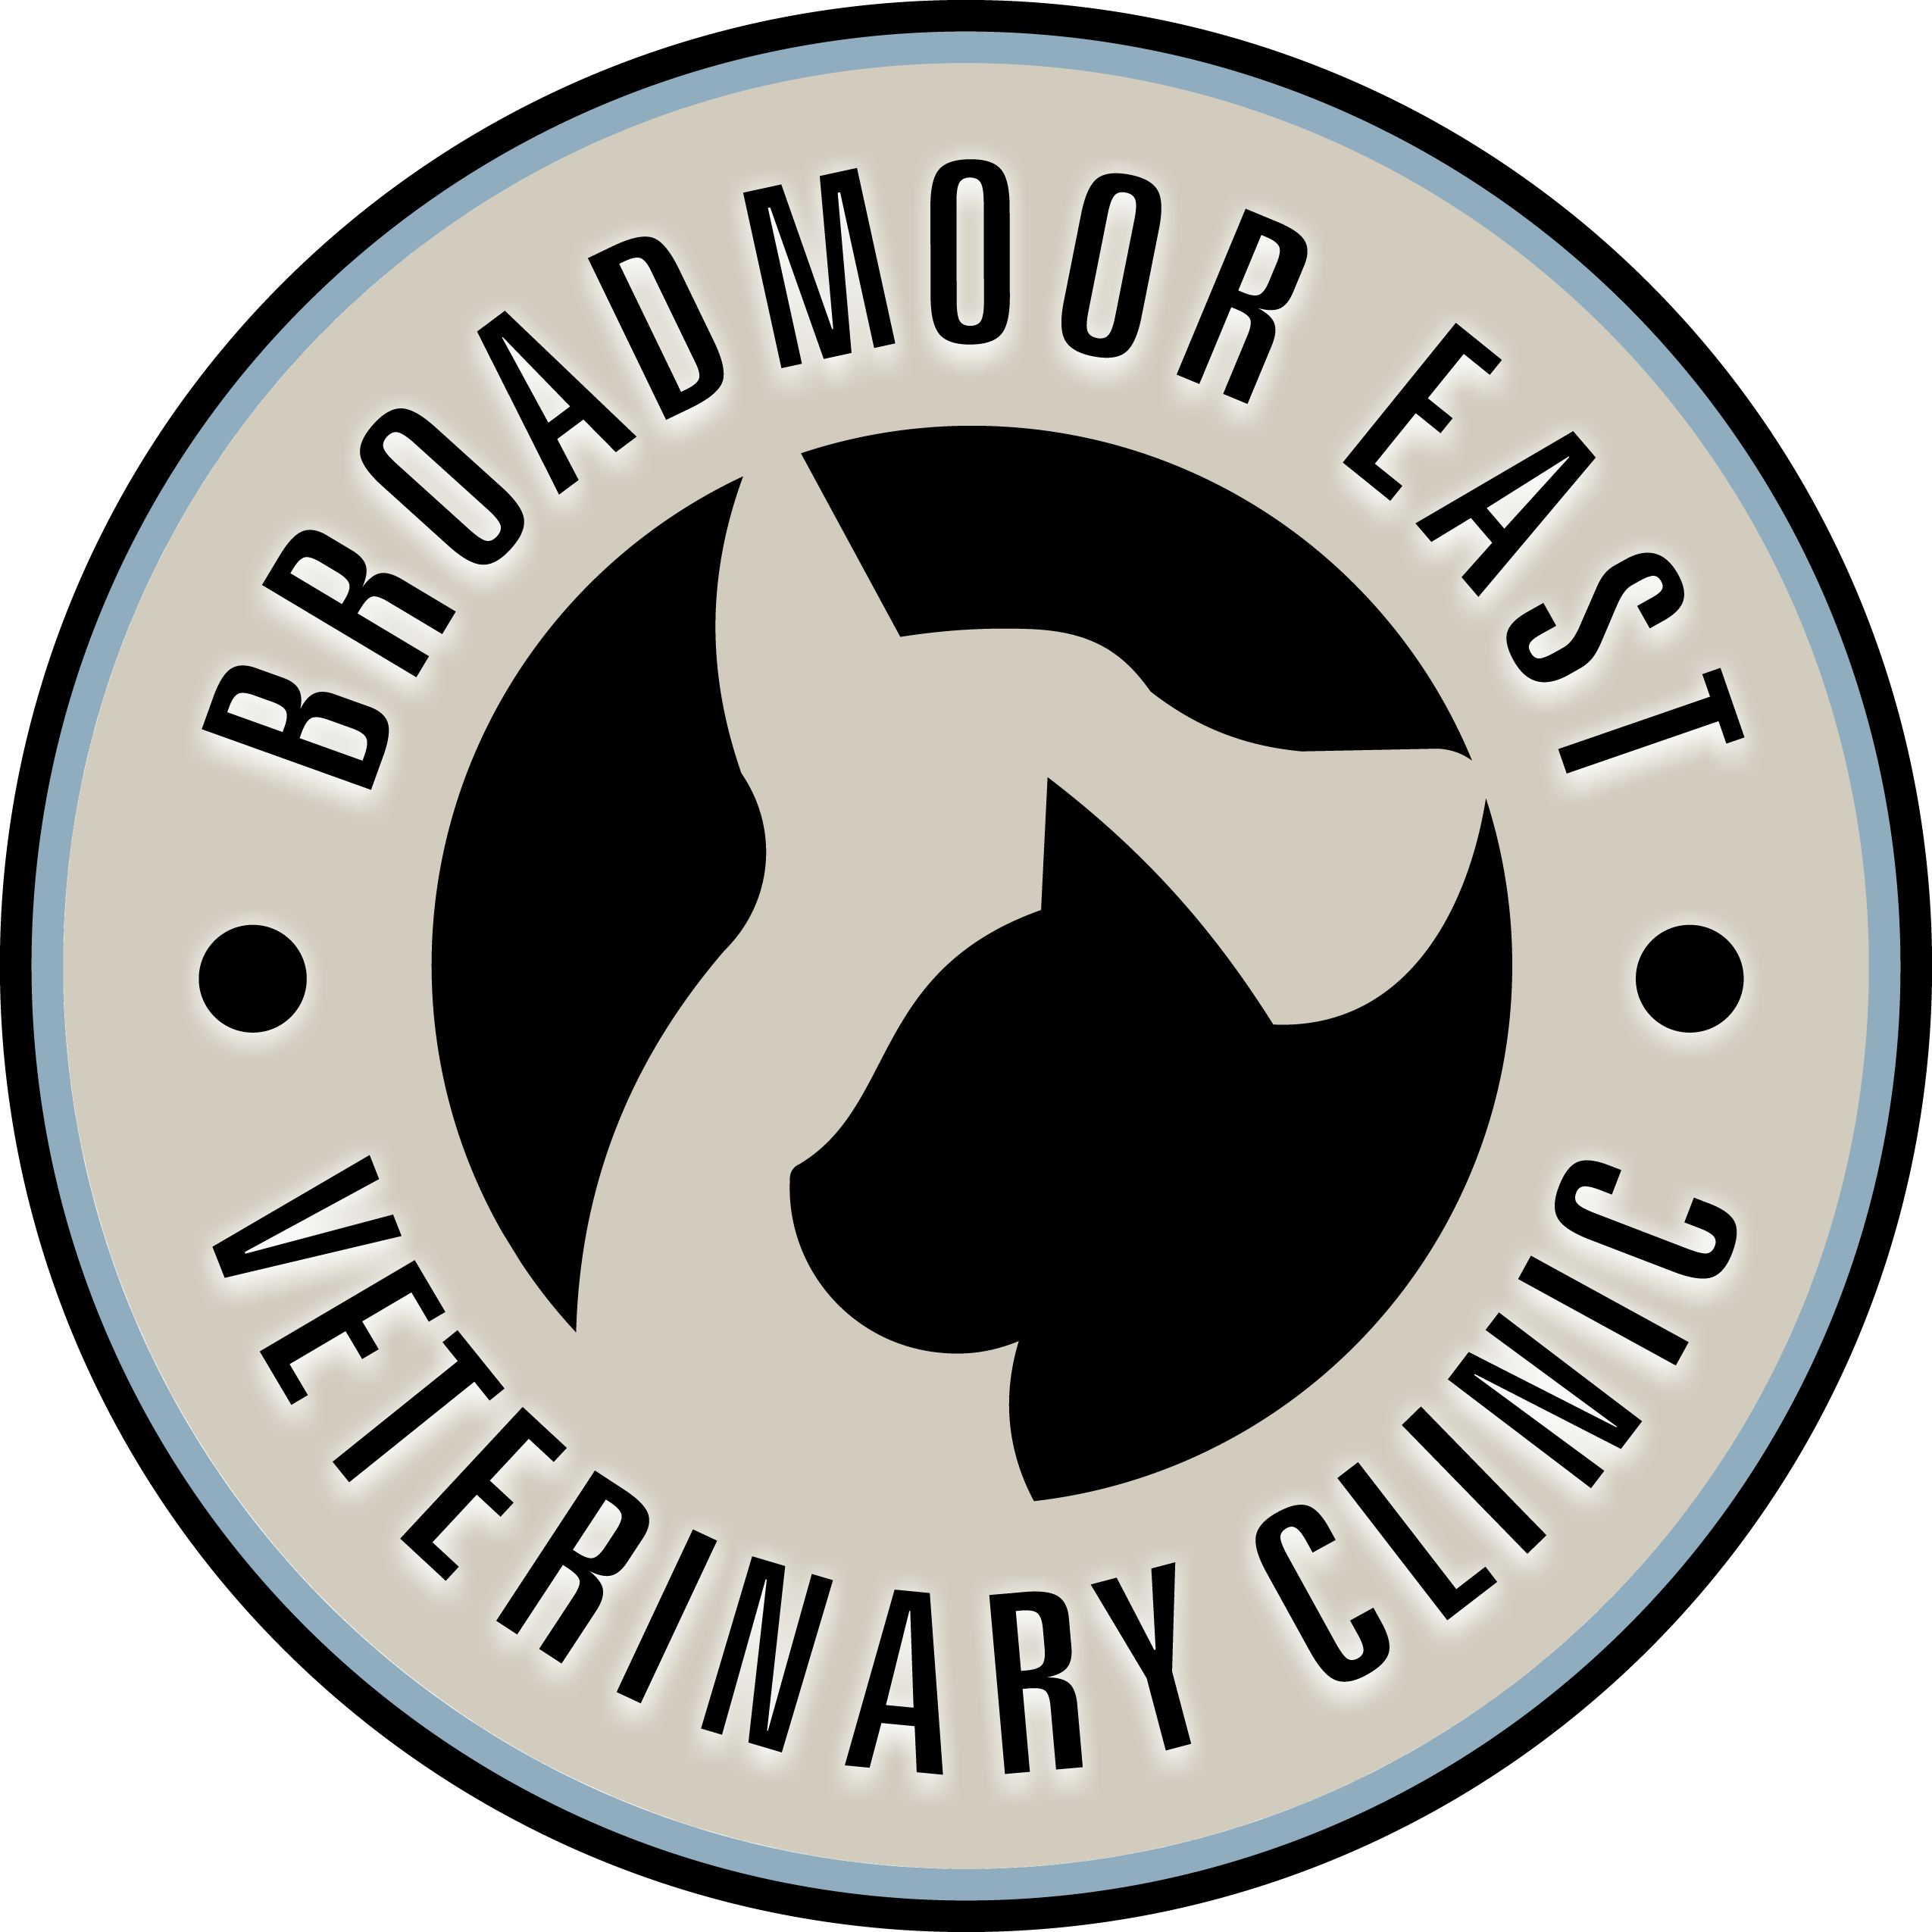 Broadmoor East Veterinary Clinic